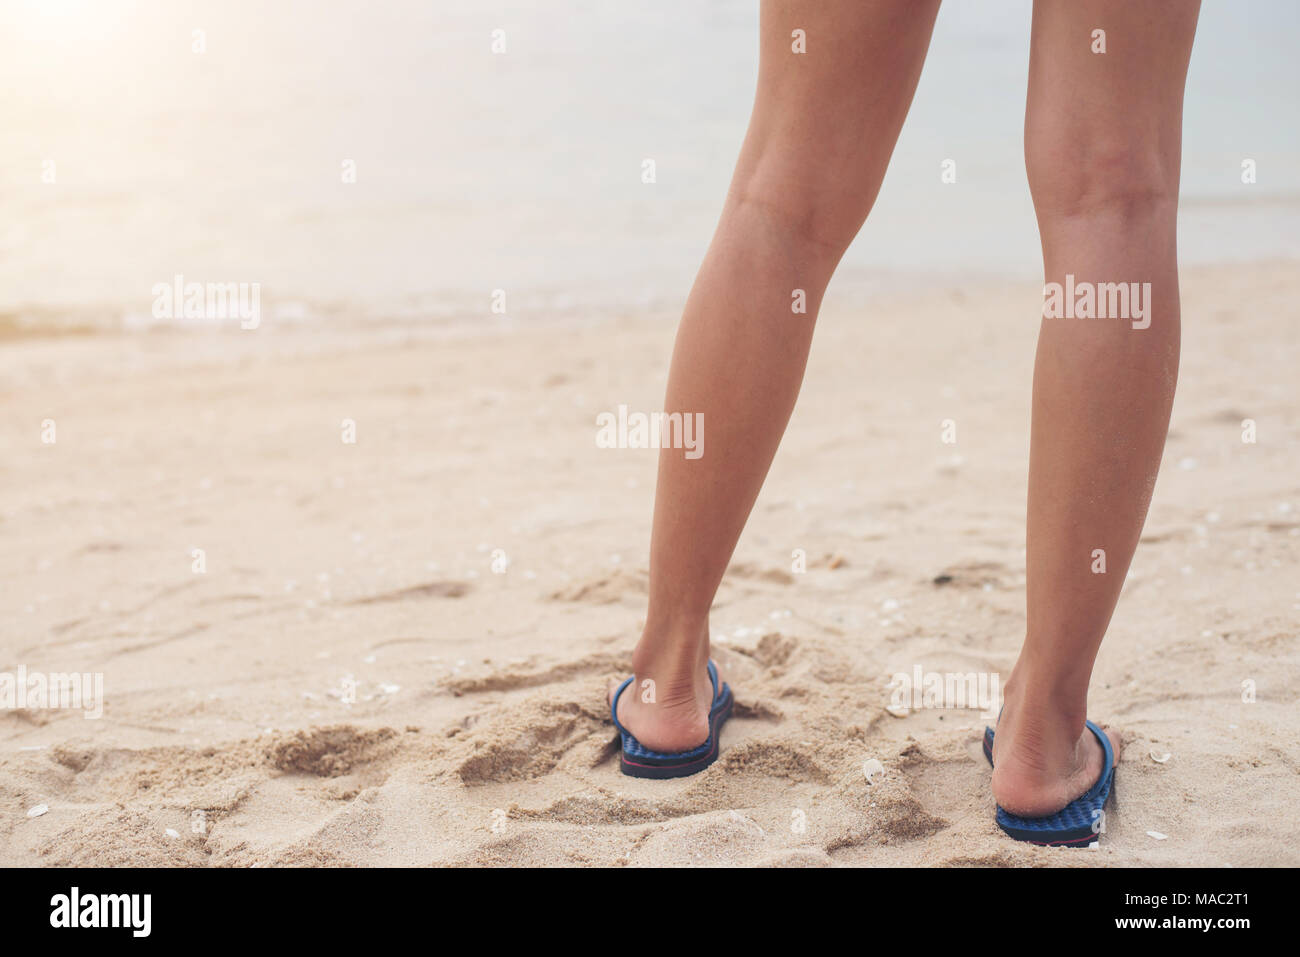 6b24e9017209 Young Feet In Sandals On Stock Photos   Young Feet In Sandals On ...